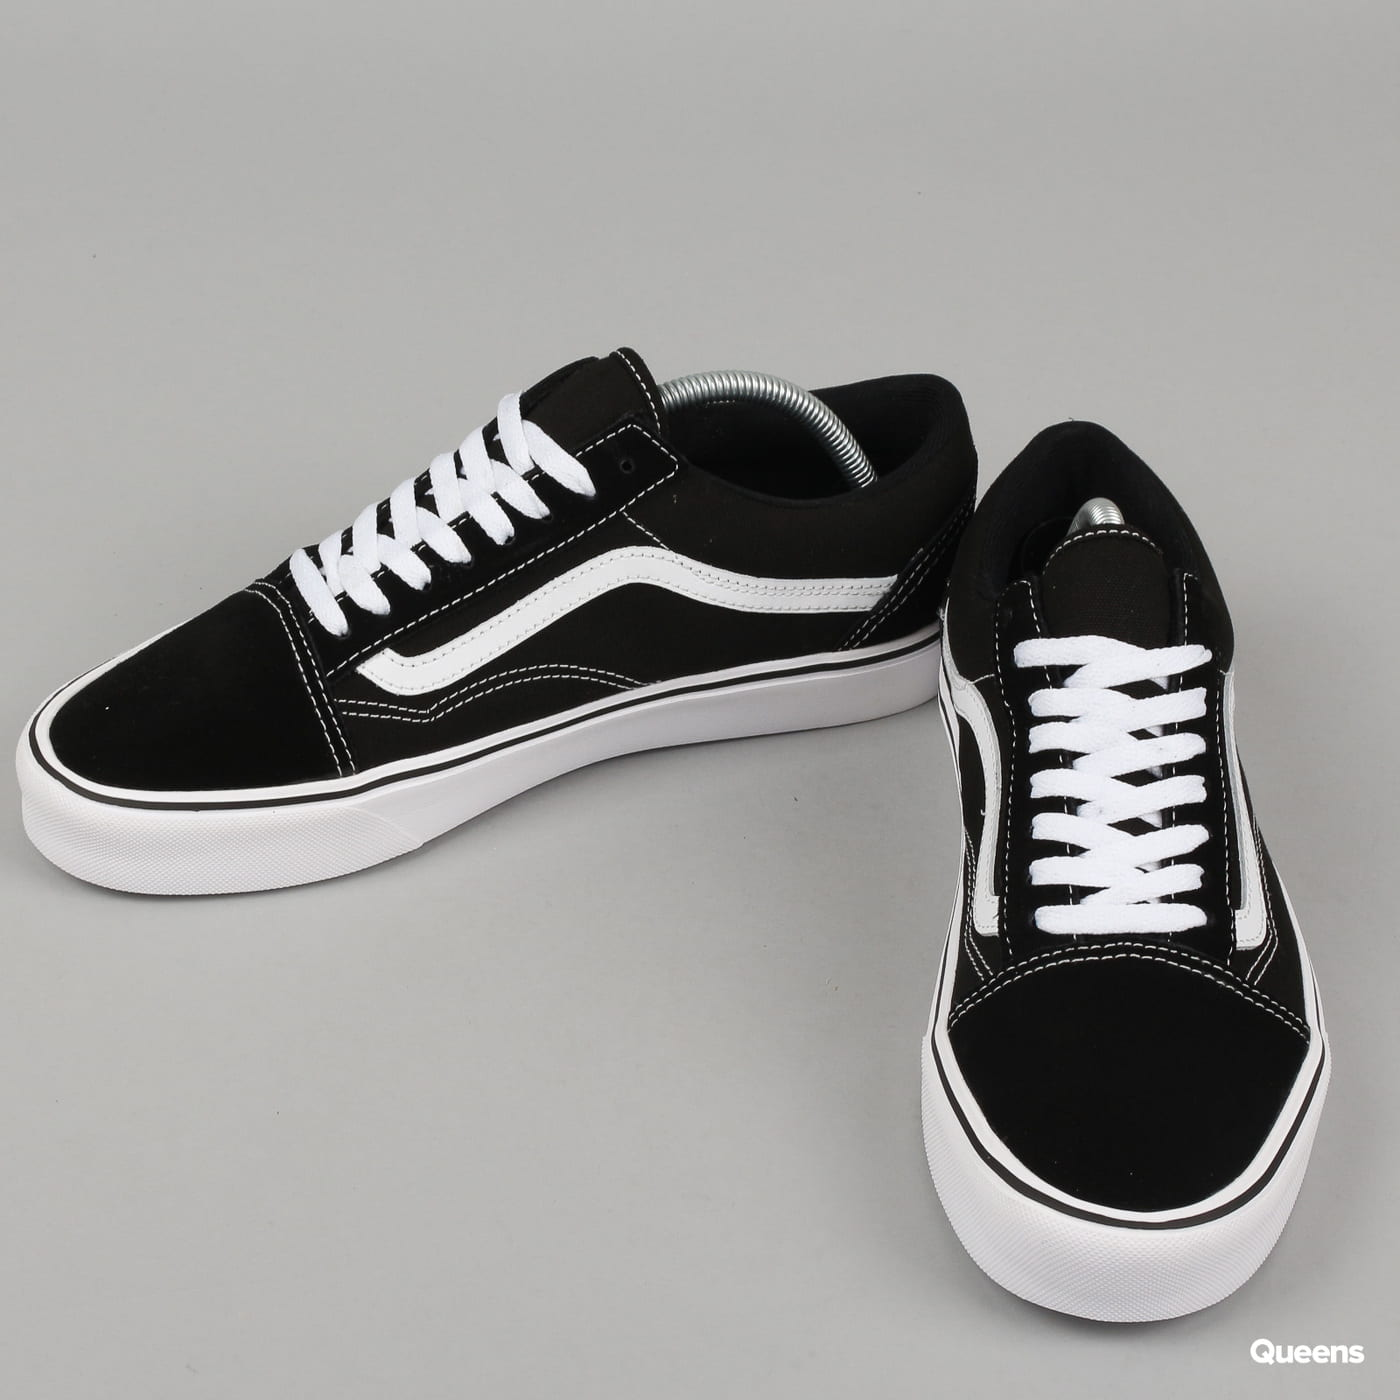 1797e5cd9378c5 Zoom in Zoom in Zoom in Zoom in Zoom in. Vans Old Skool Lite (suede canvas) black    white